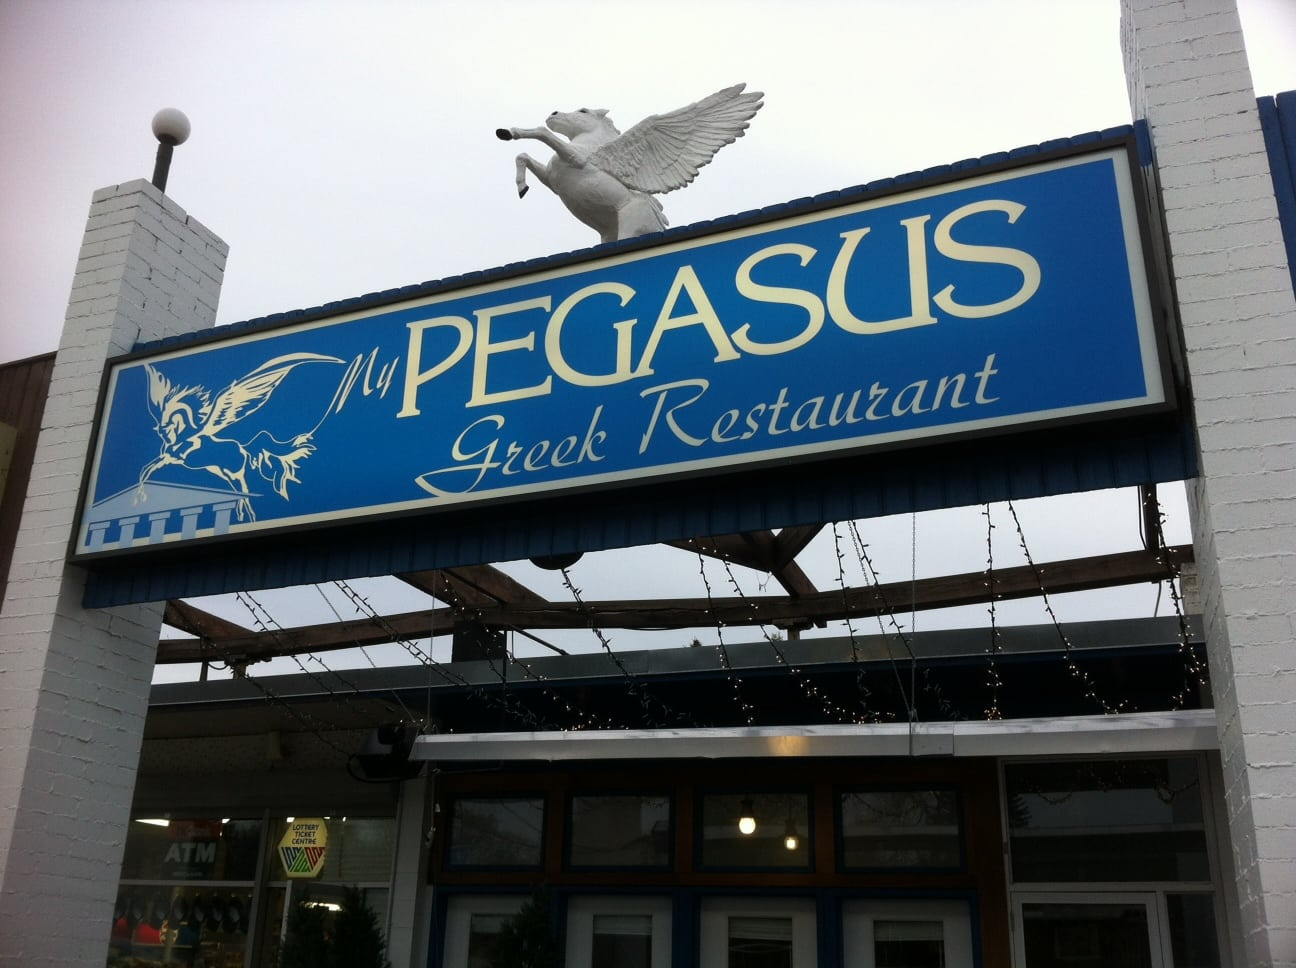 Pegasus Restaurant London